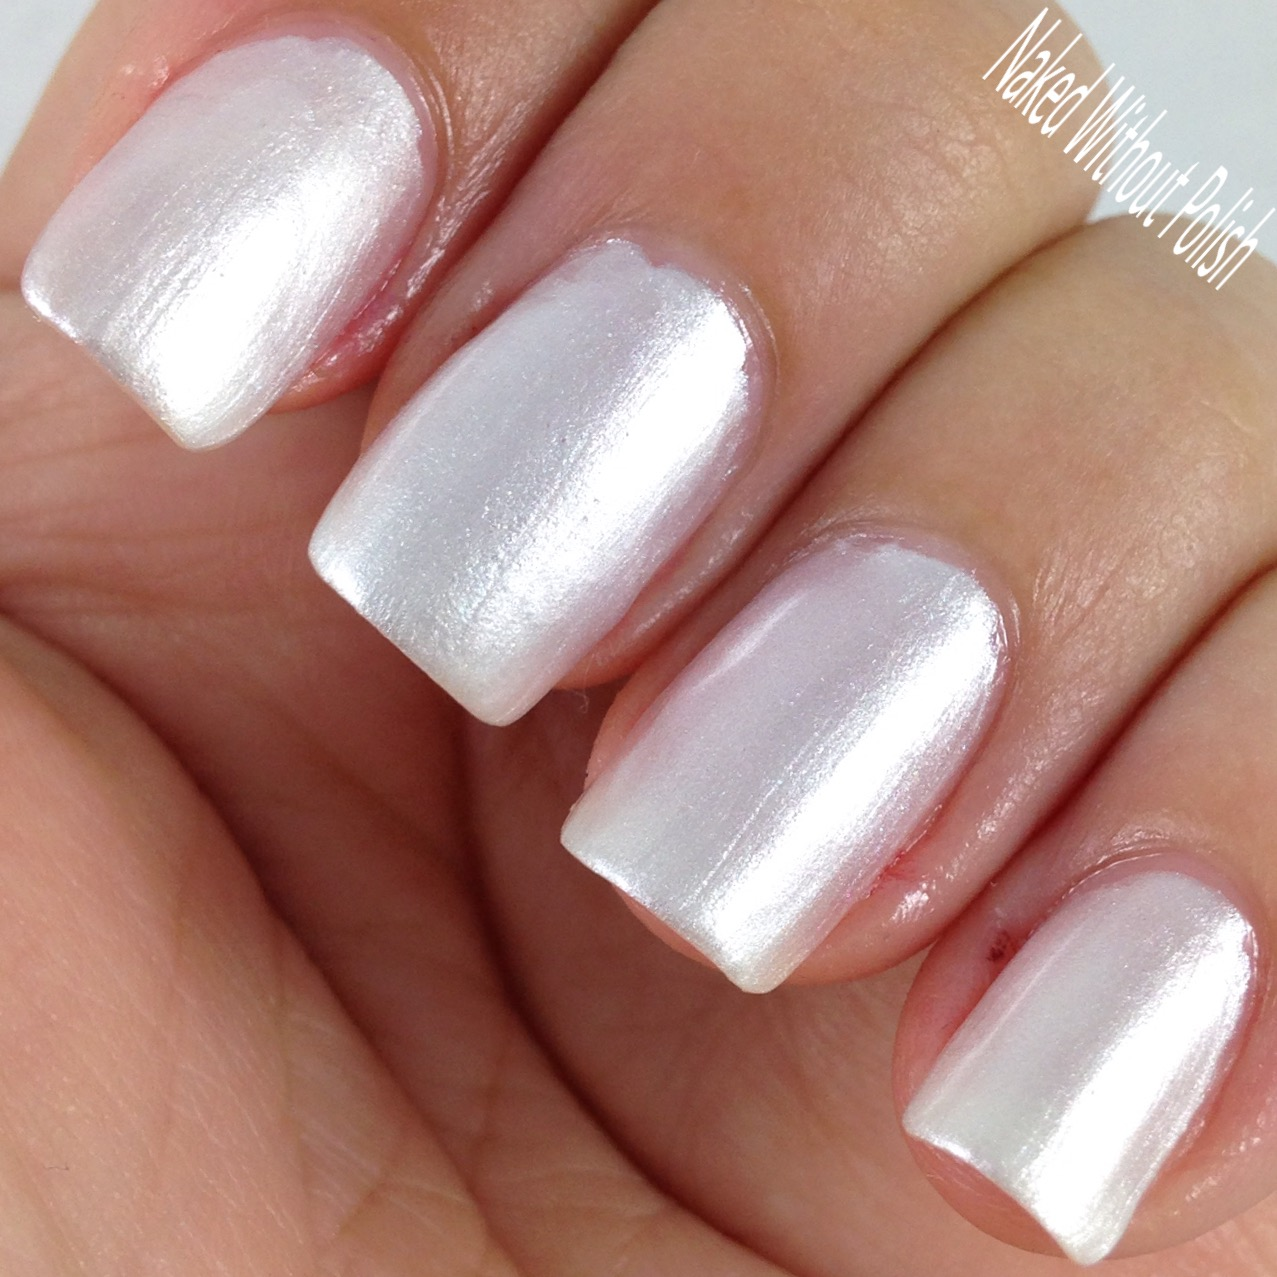 My-Stunning-Nails-Coconut-Macaroon-7